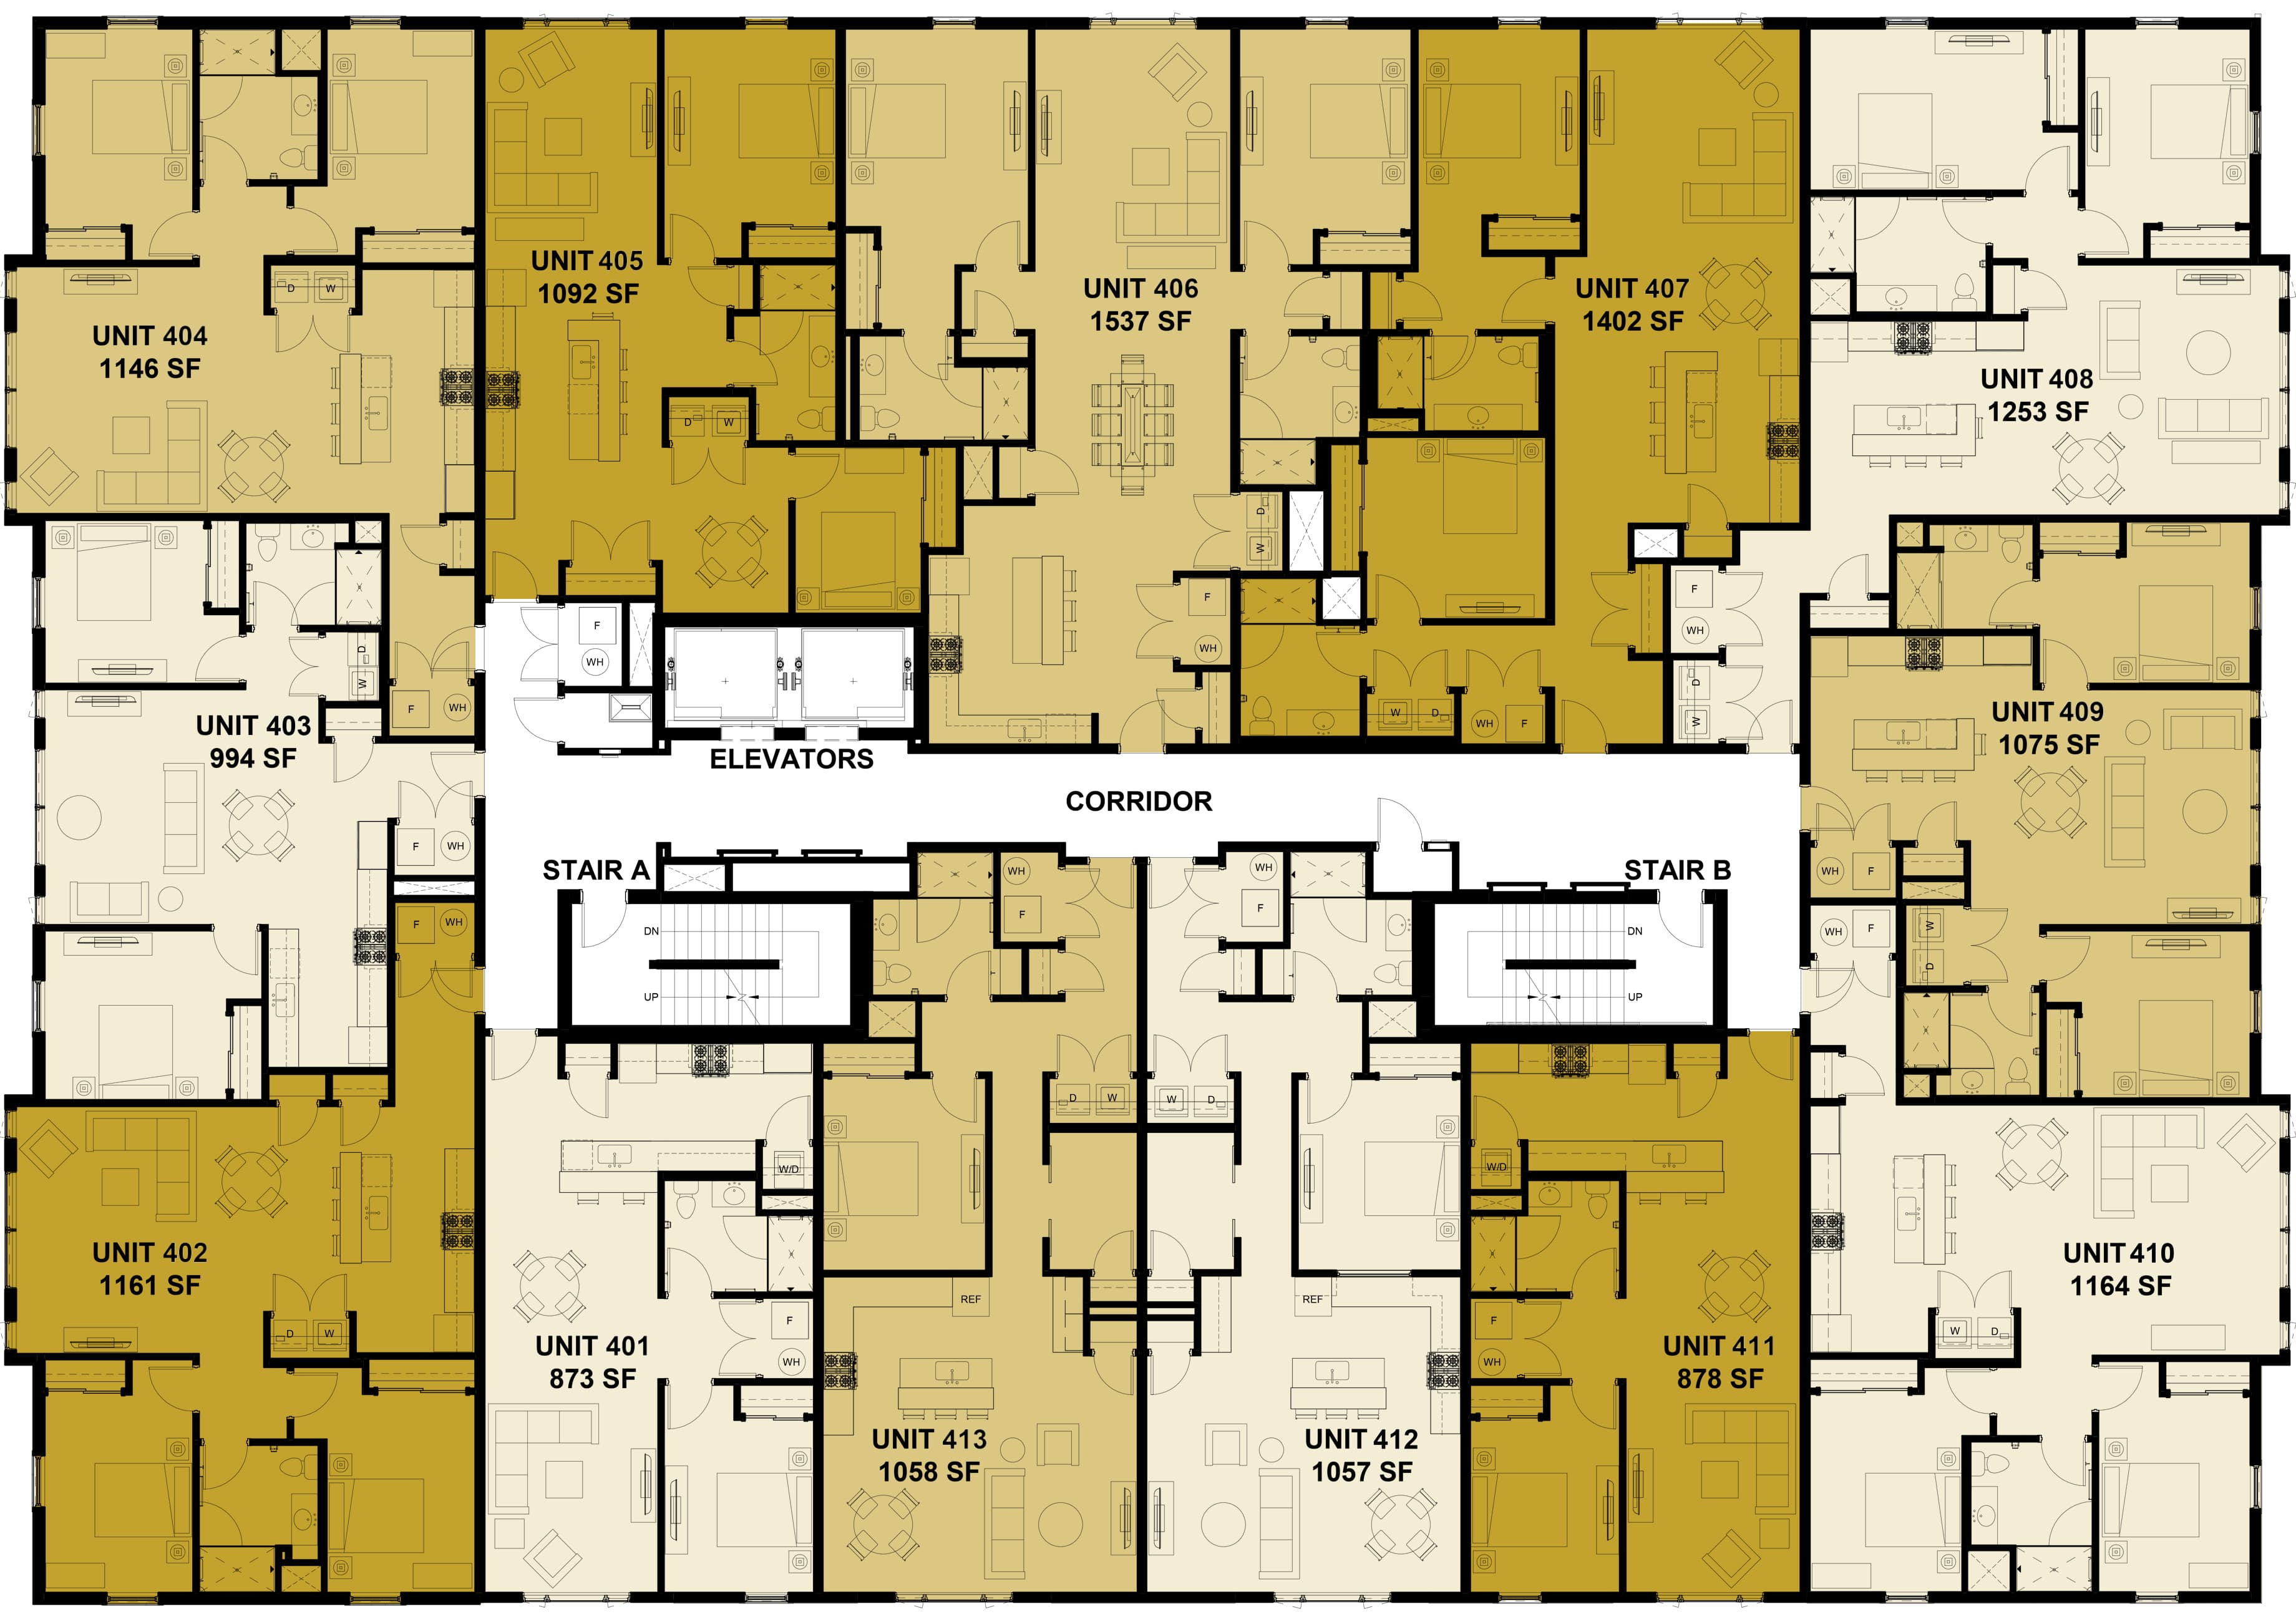 Plans for the Fourth Floor